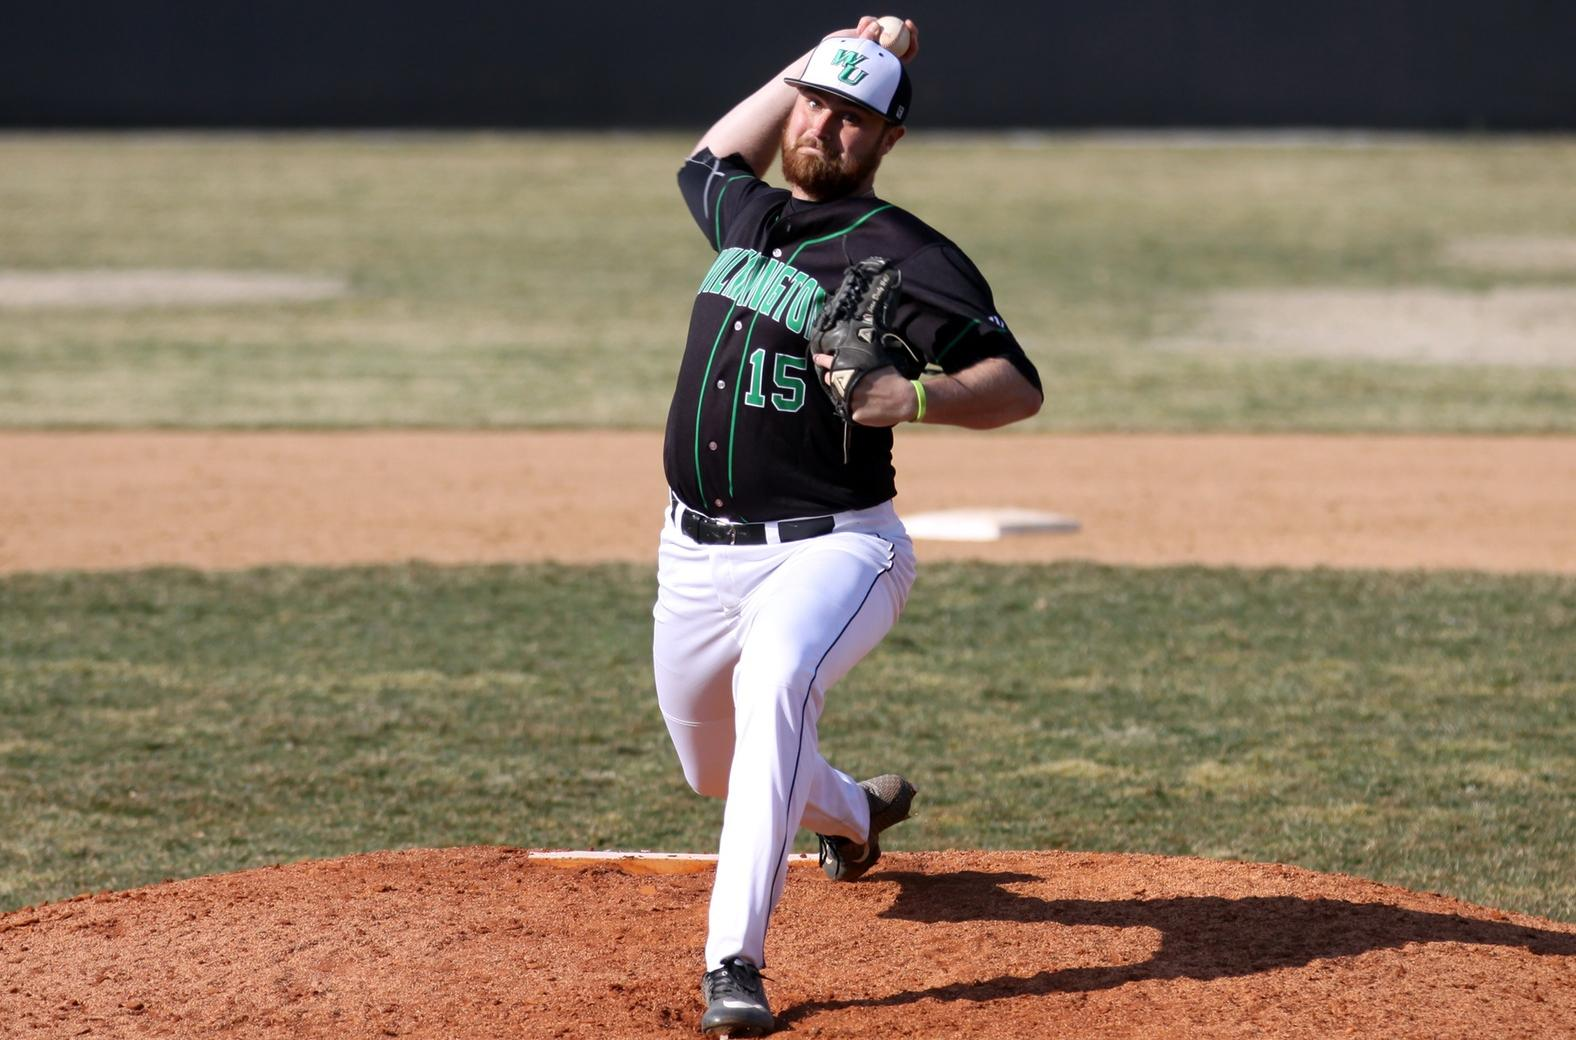 Copyright 2019; Wilmington University. All rights reserved. File photo of Sean Deely who struck out 11 in game one against USciences on Friday. Photo by Dan Lauletta. March 16, 2019 vs. Bridgeport.